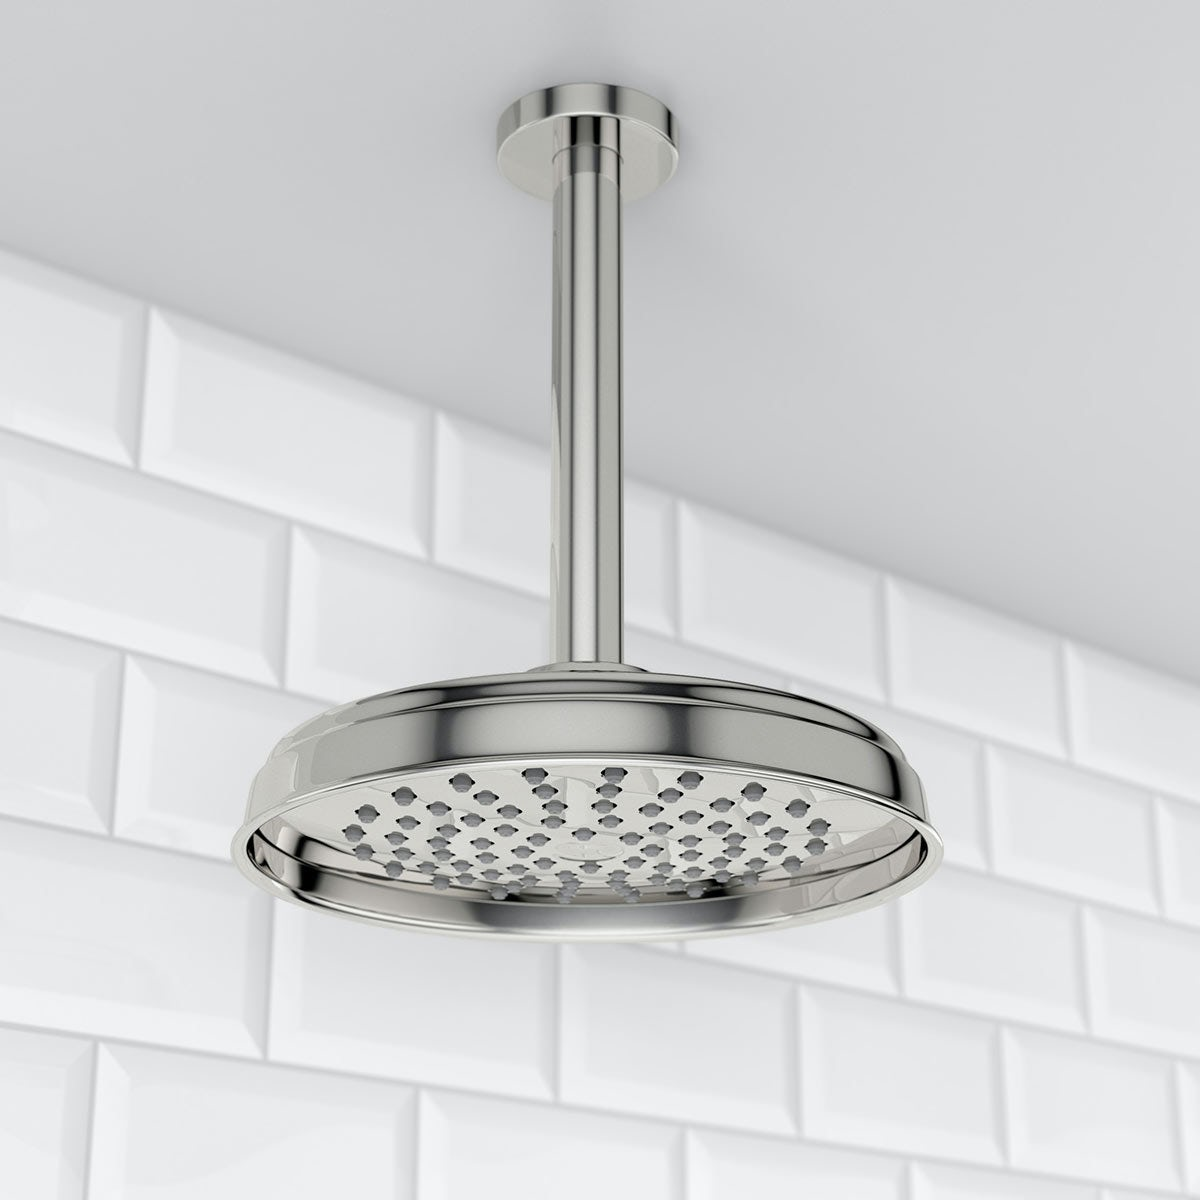 traditional 8 rain can ceiling armthe bath co rain can shower head with round ceiling arm